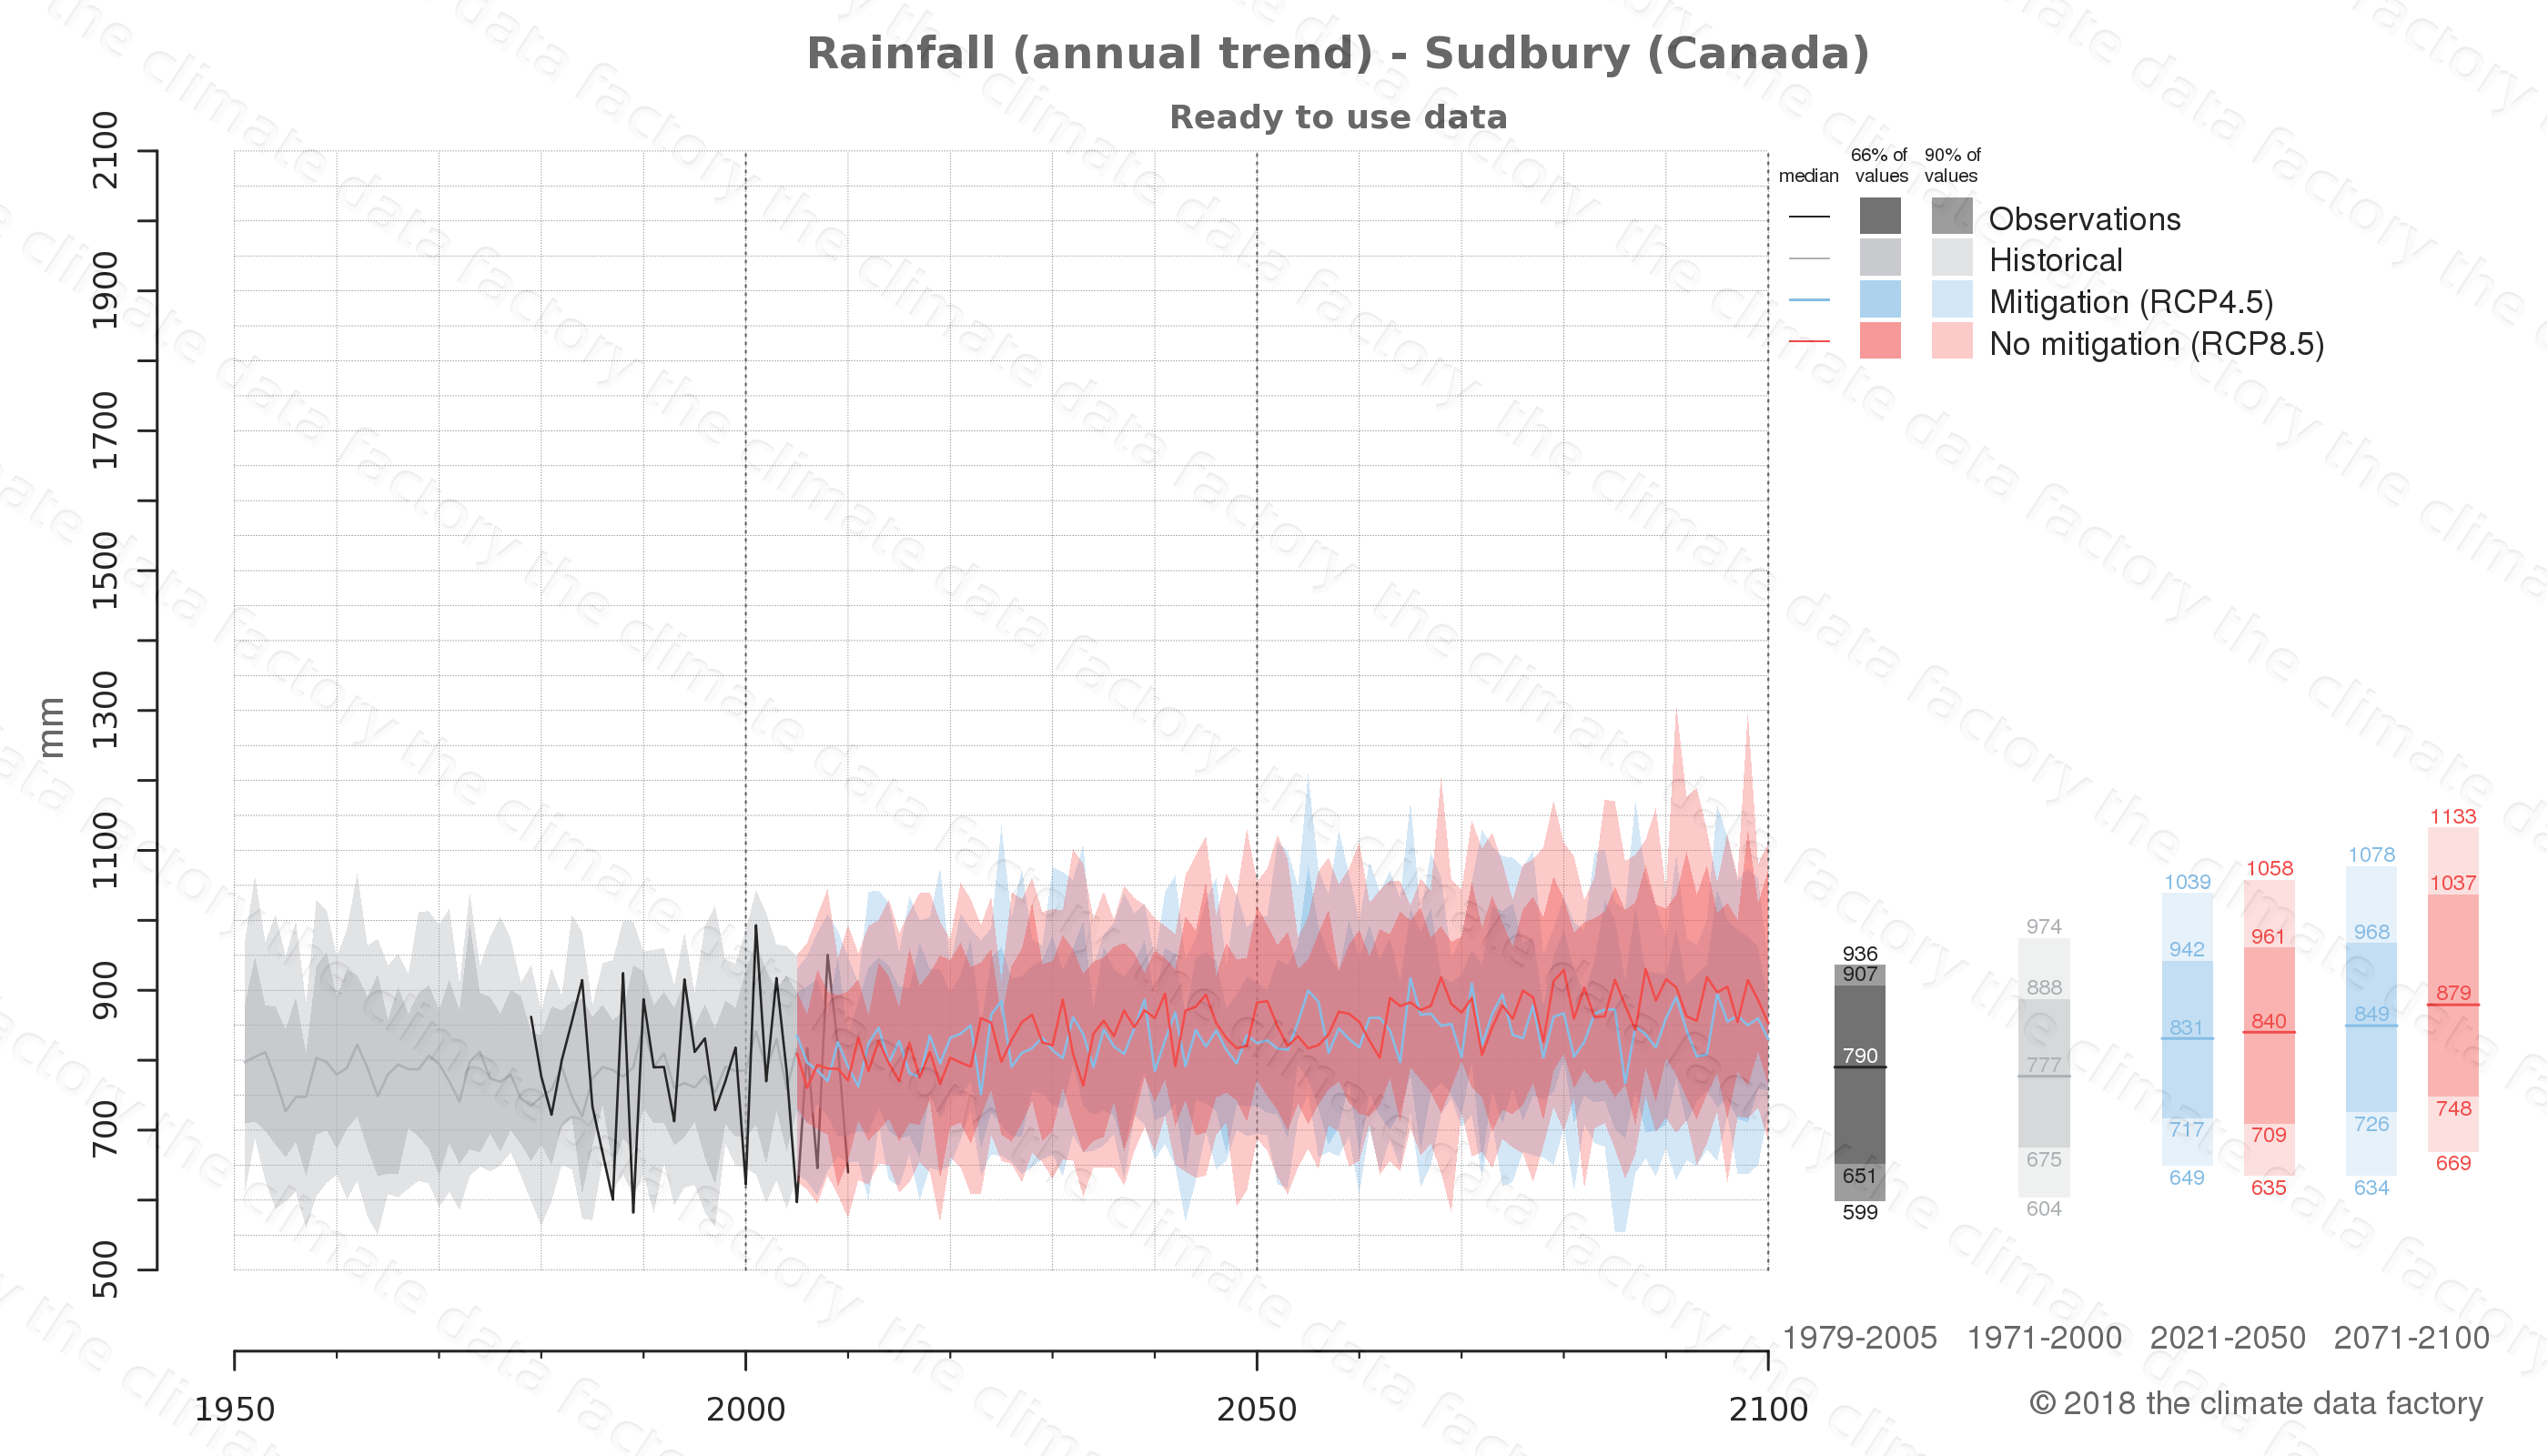 climate change data policy adaptation climate graph city data rainfall sudbury canada